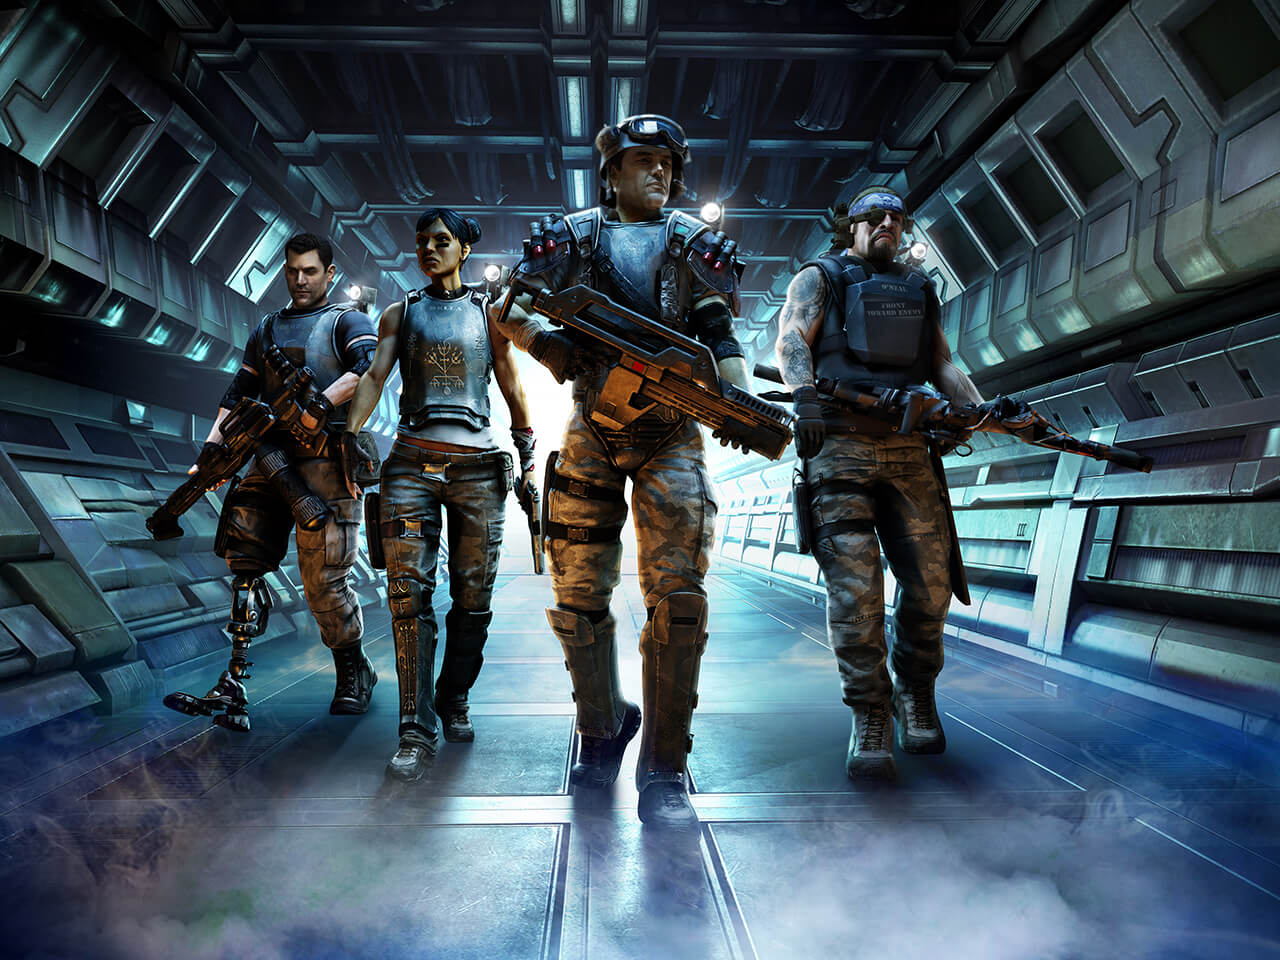 Video Game Computer Generated illustration of sci fi marines with weapons walking inside a futuristic spaceship